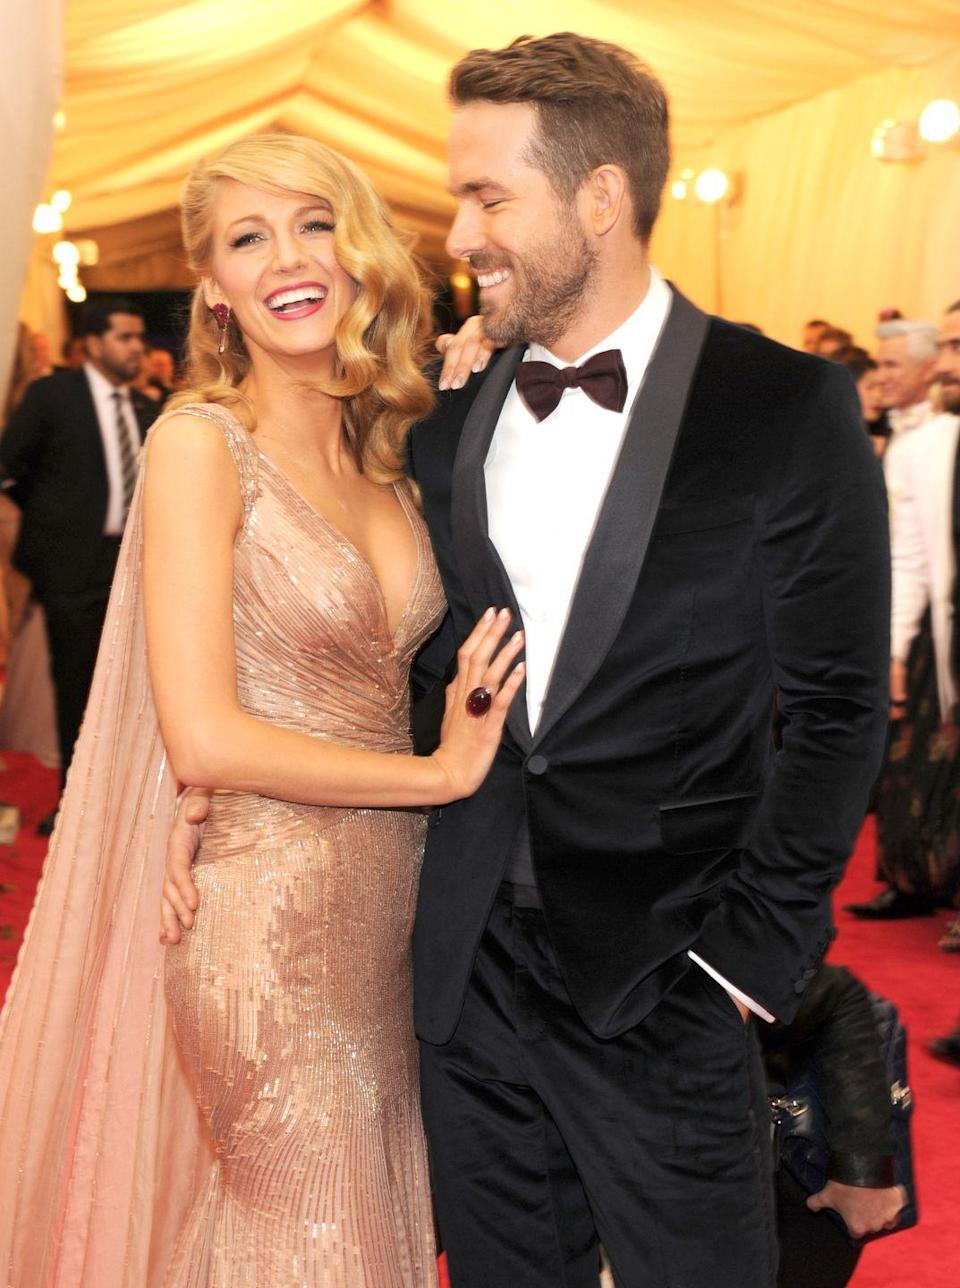 "<p>After meeting on the set of <em>Green Lantern</em> early in 2010, when Lively was just 22 years old and Reynolds was 33, the two started dating in 2011 and were married in September of 2012. Today, the adorable A-listers are proud parents to three daughters, after <a href=""https://www.harpersbazaar.com/celebrity/latest/a30911462/blake-lively-motherhood-obsessed/"" rel=""nofollow noopener"" target=""_blank"" data-ylk=""slk:welcoming their third child"" class=""link rapid-noclick-resp"">welcoming their third child</a> in August, and appear on every red carpet <a href=""https://www.harpersbazaar.com/celebrity/latest/a18542016/blake-lively-and-ryan-reynolds-body-language/"" rel=""nofollow noopener"" target=""_blank"" data-ylk=""slk:affectionately arm-in-arm"" class=""link rapid-noclick-resp"">affectionately arm-in-arm</a>.</p>"